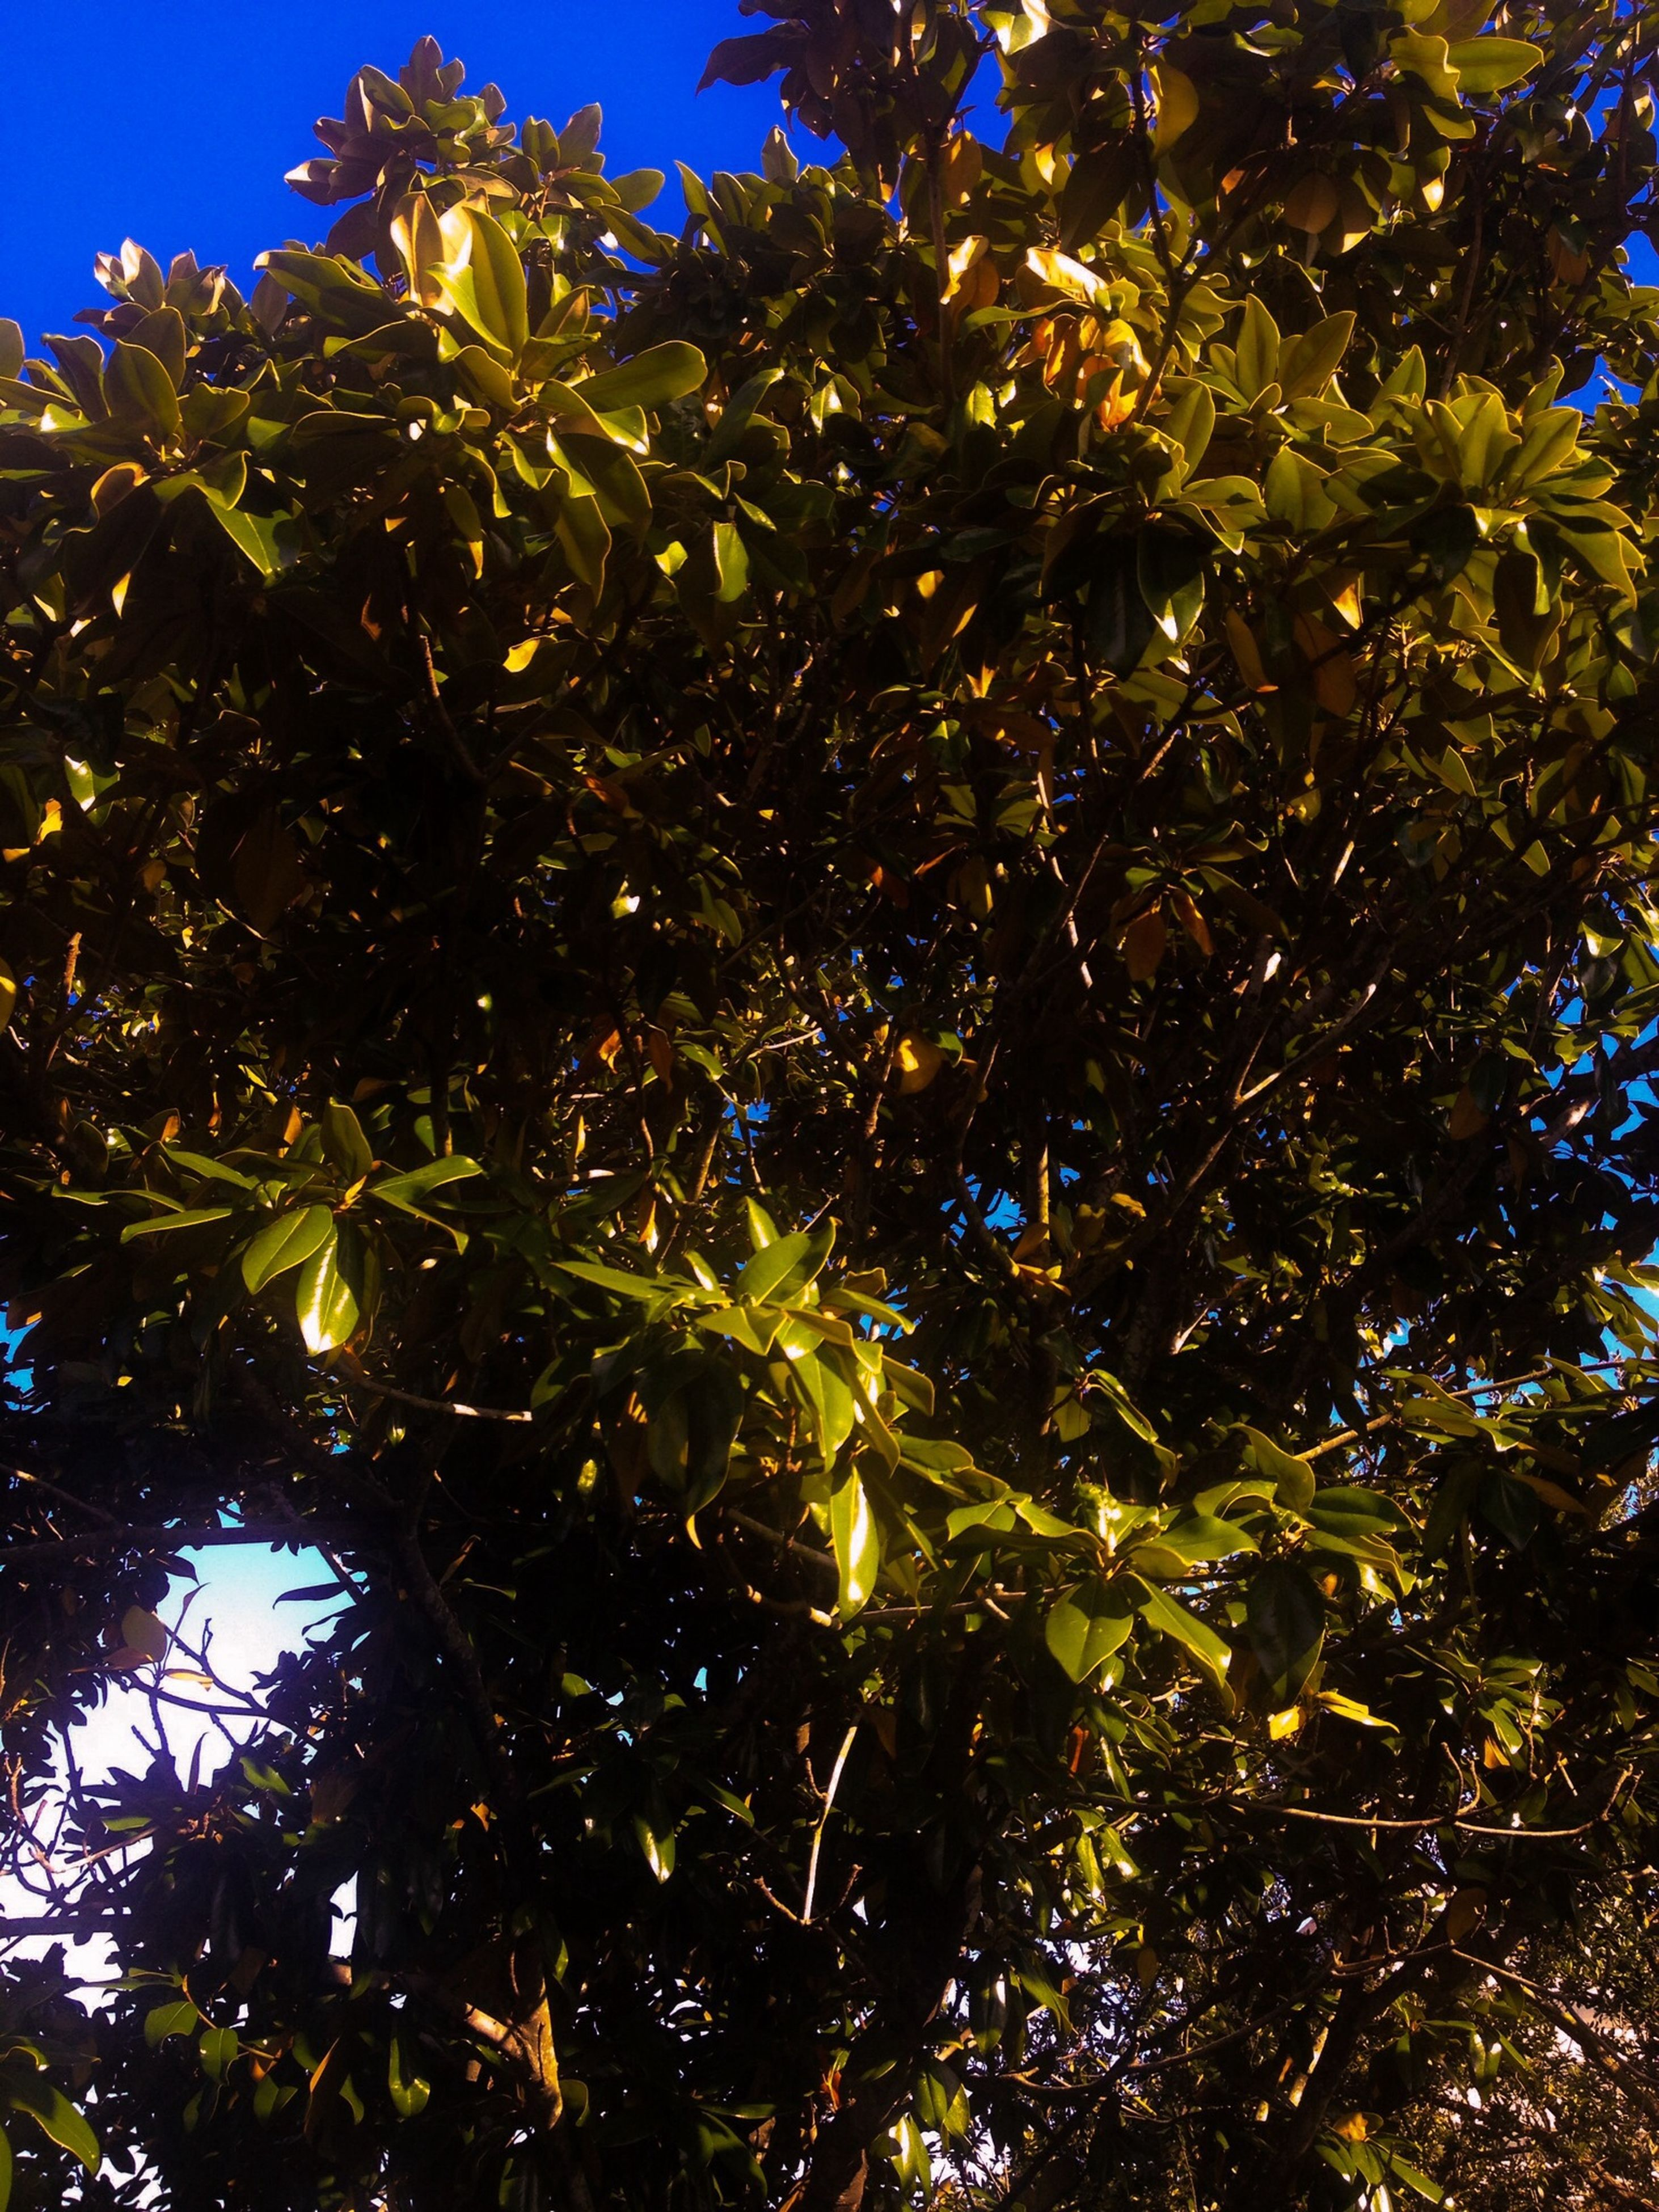 low angle view, tree, growth, blue, sunlight, branch, clear sky, nature, leaf, green color, beauty in nature, tranquility, sky, day, outdoors, no people, plant, sunny, freshness, green